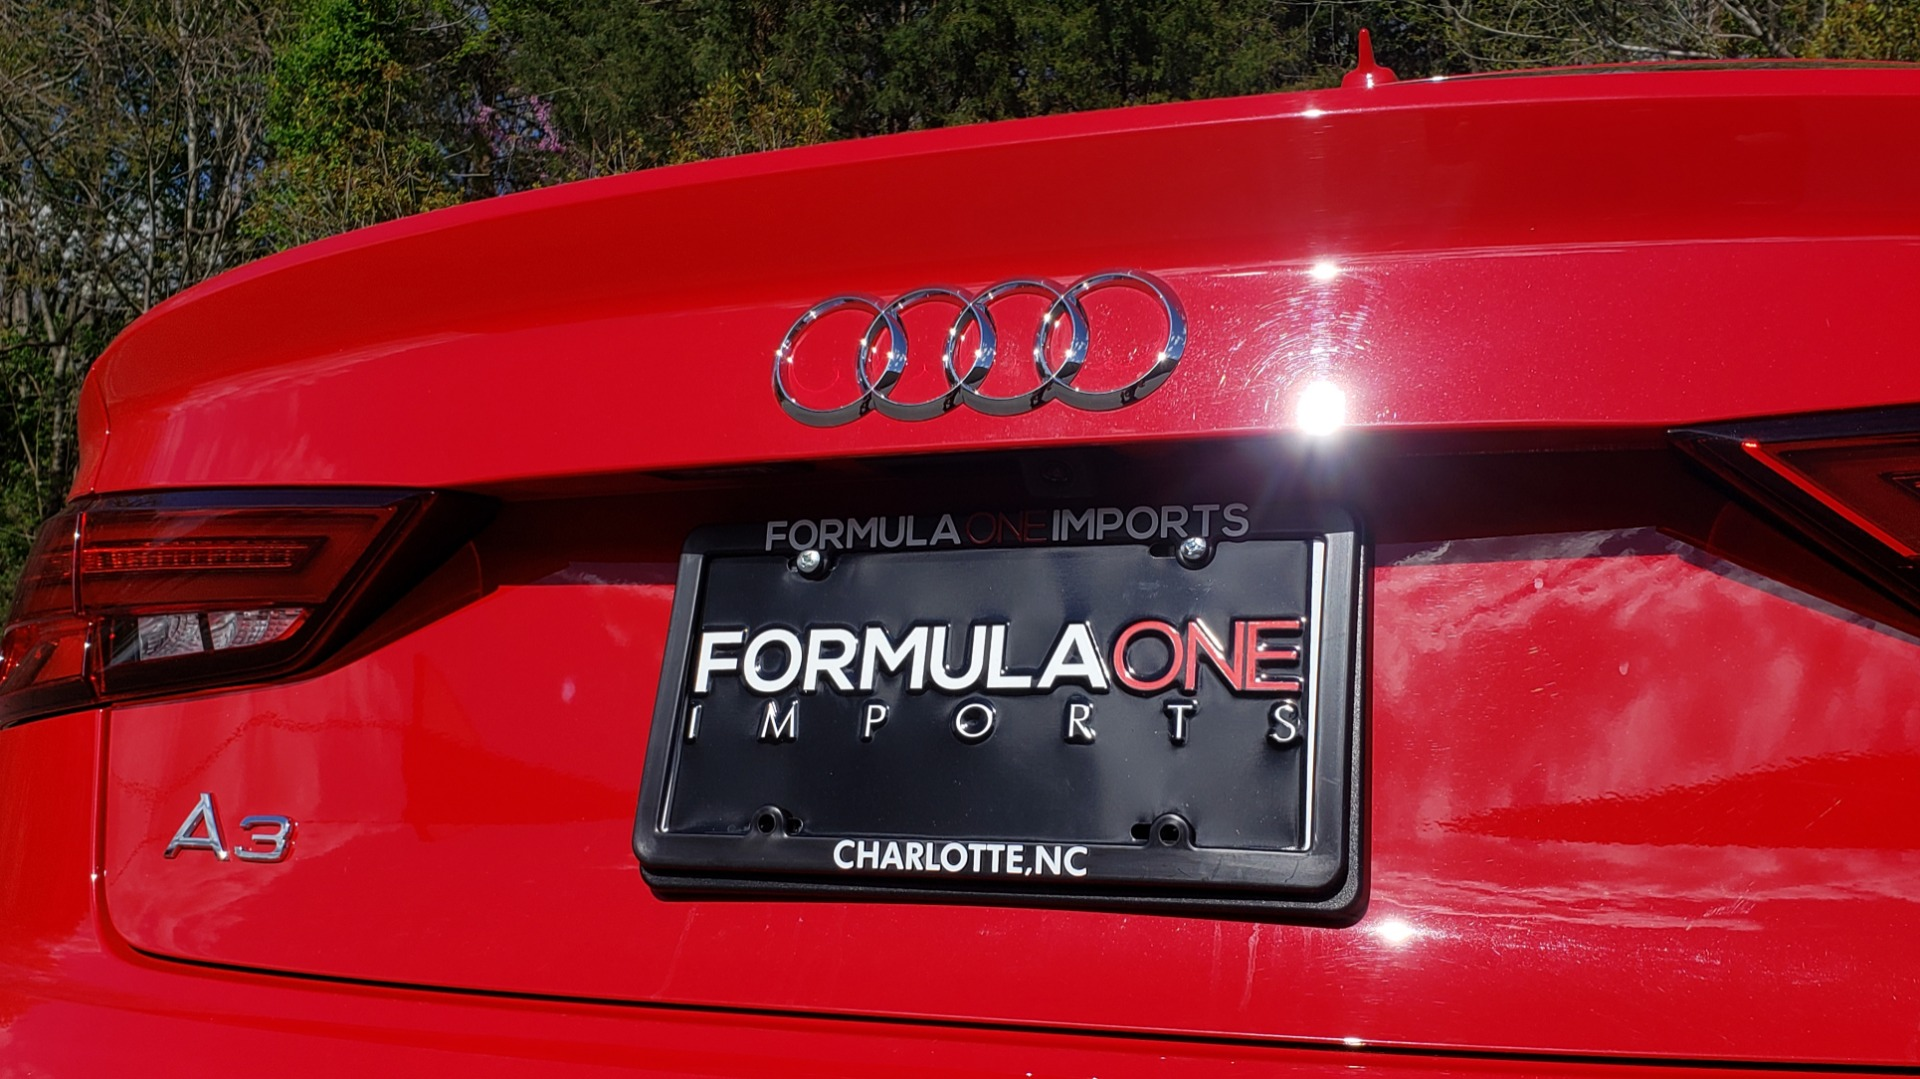 Used 2017 Audi A3 SEDAN PREMIUM PLUS / S-TRONIC / NAV / TECH / SUNROOF / REARVIEW for sale Sold at Formula Imports in Charlotte NC 28227 28